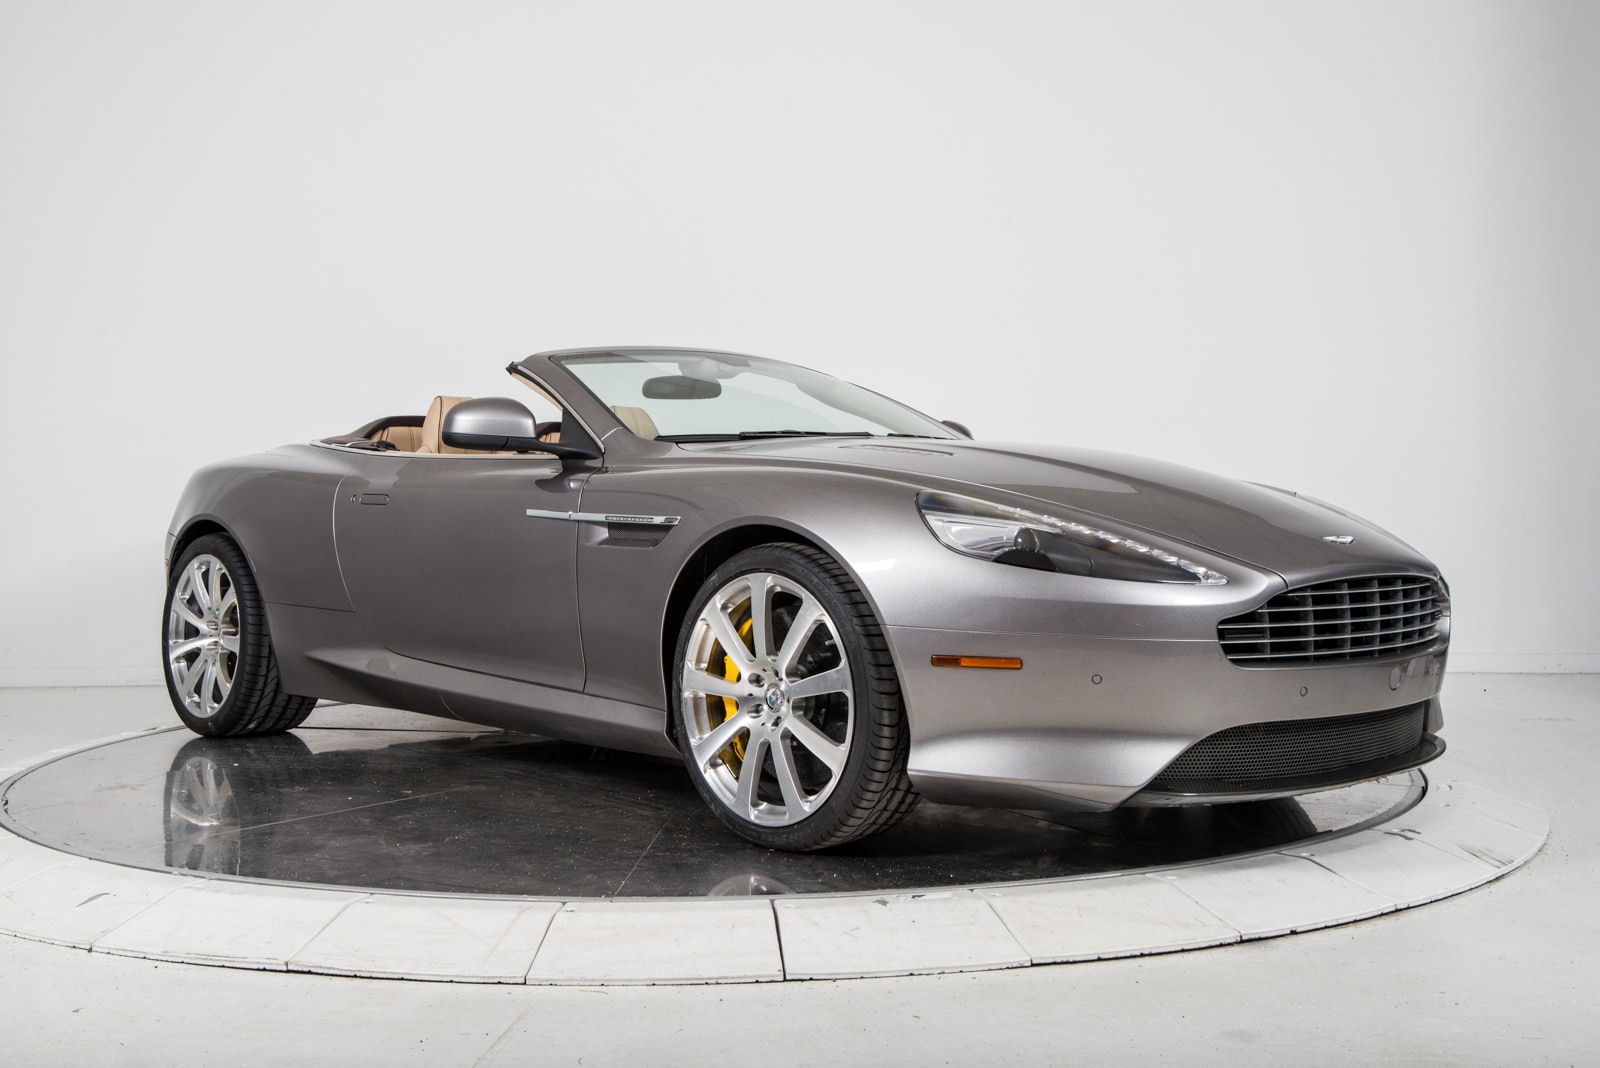 used 2013 aston martin db9 volante for sale plainview near long island ny vin. Black Bedroom Furniture Sets. Home Design Ideas